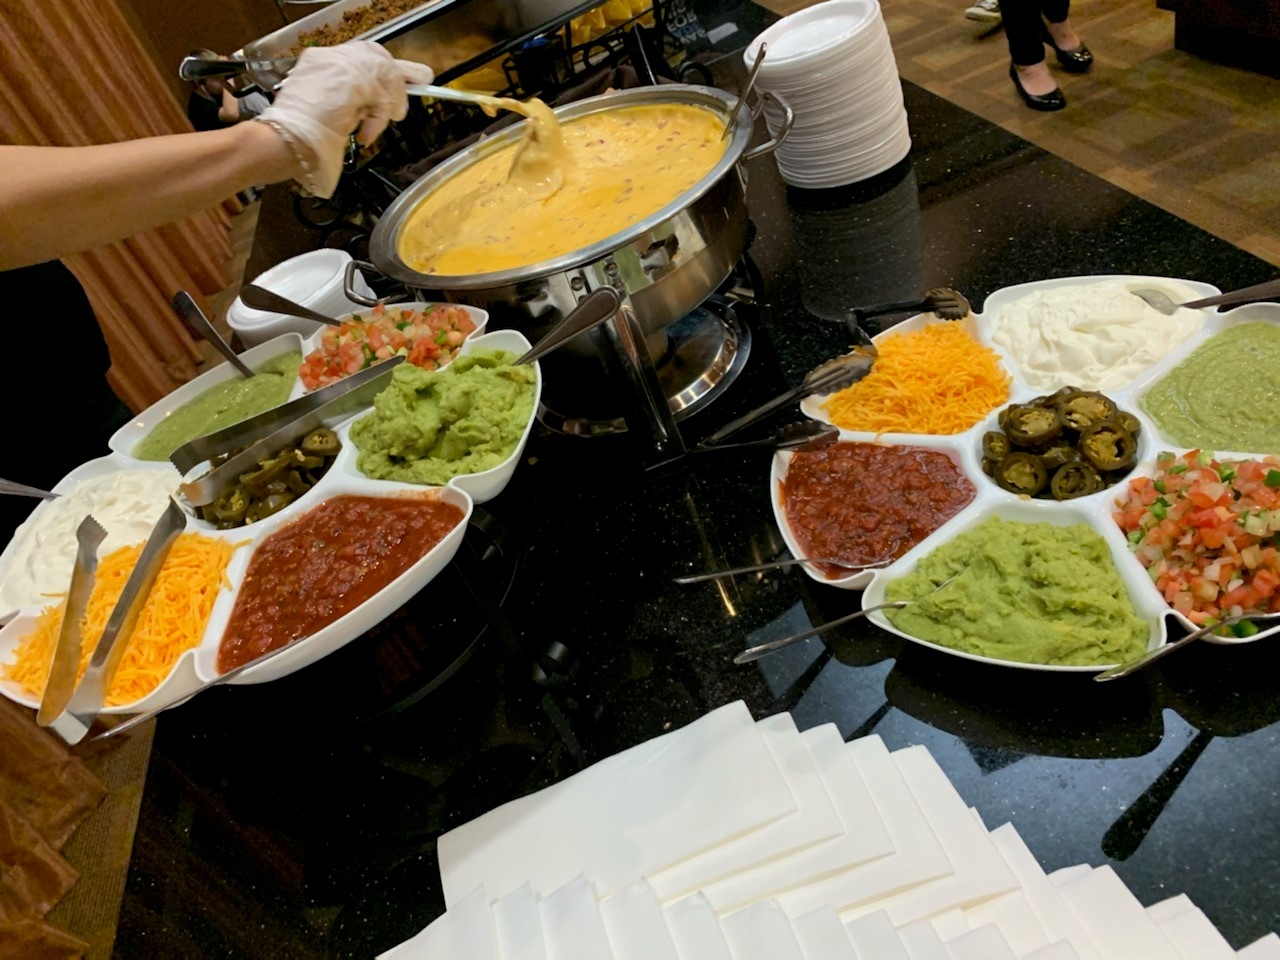 nacho station at an event with nacho cheese, guacamole, salsa, shredded cheese, jalapenos, and sour cream